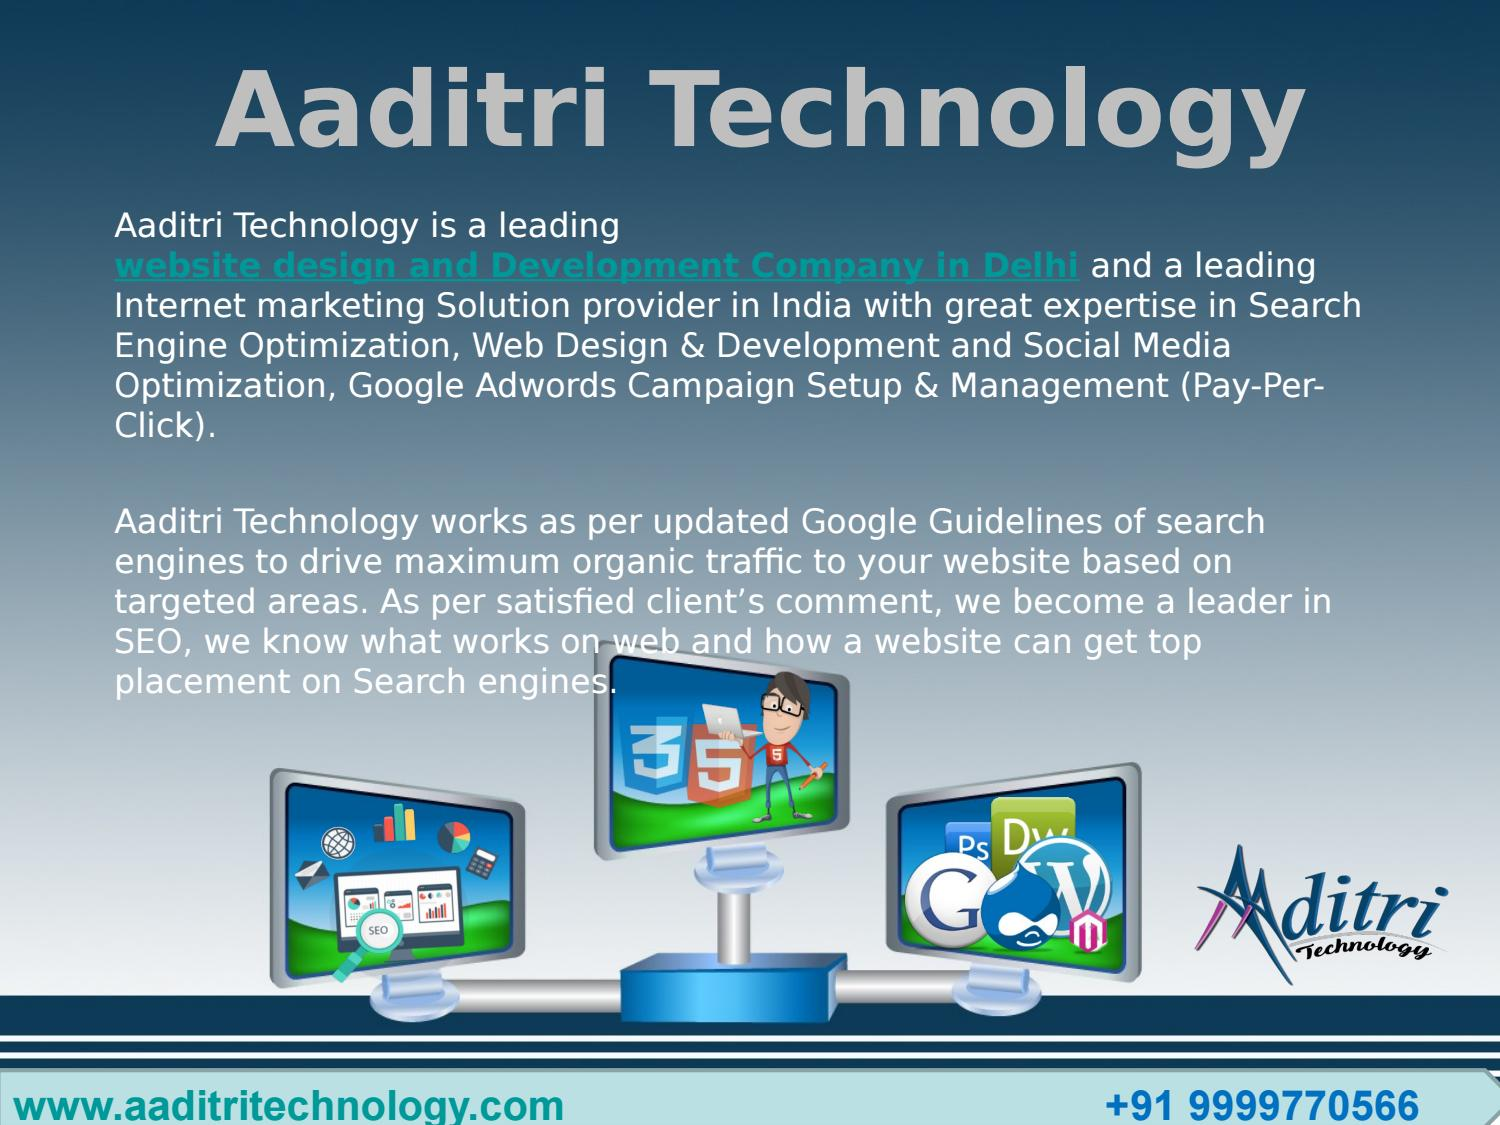 Aaditri Technology Web Design Development Company In Delhi By Aaditri Technology Issuu